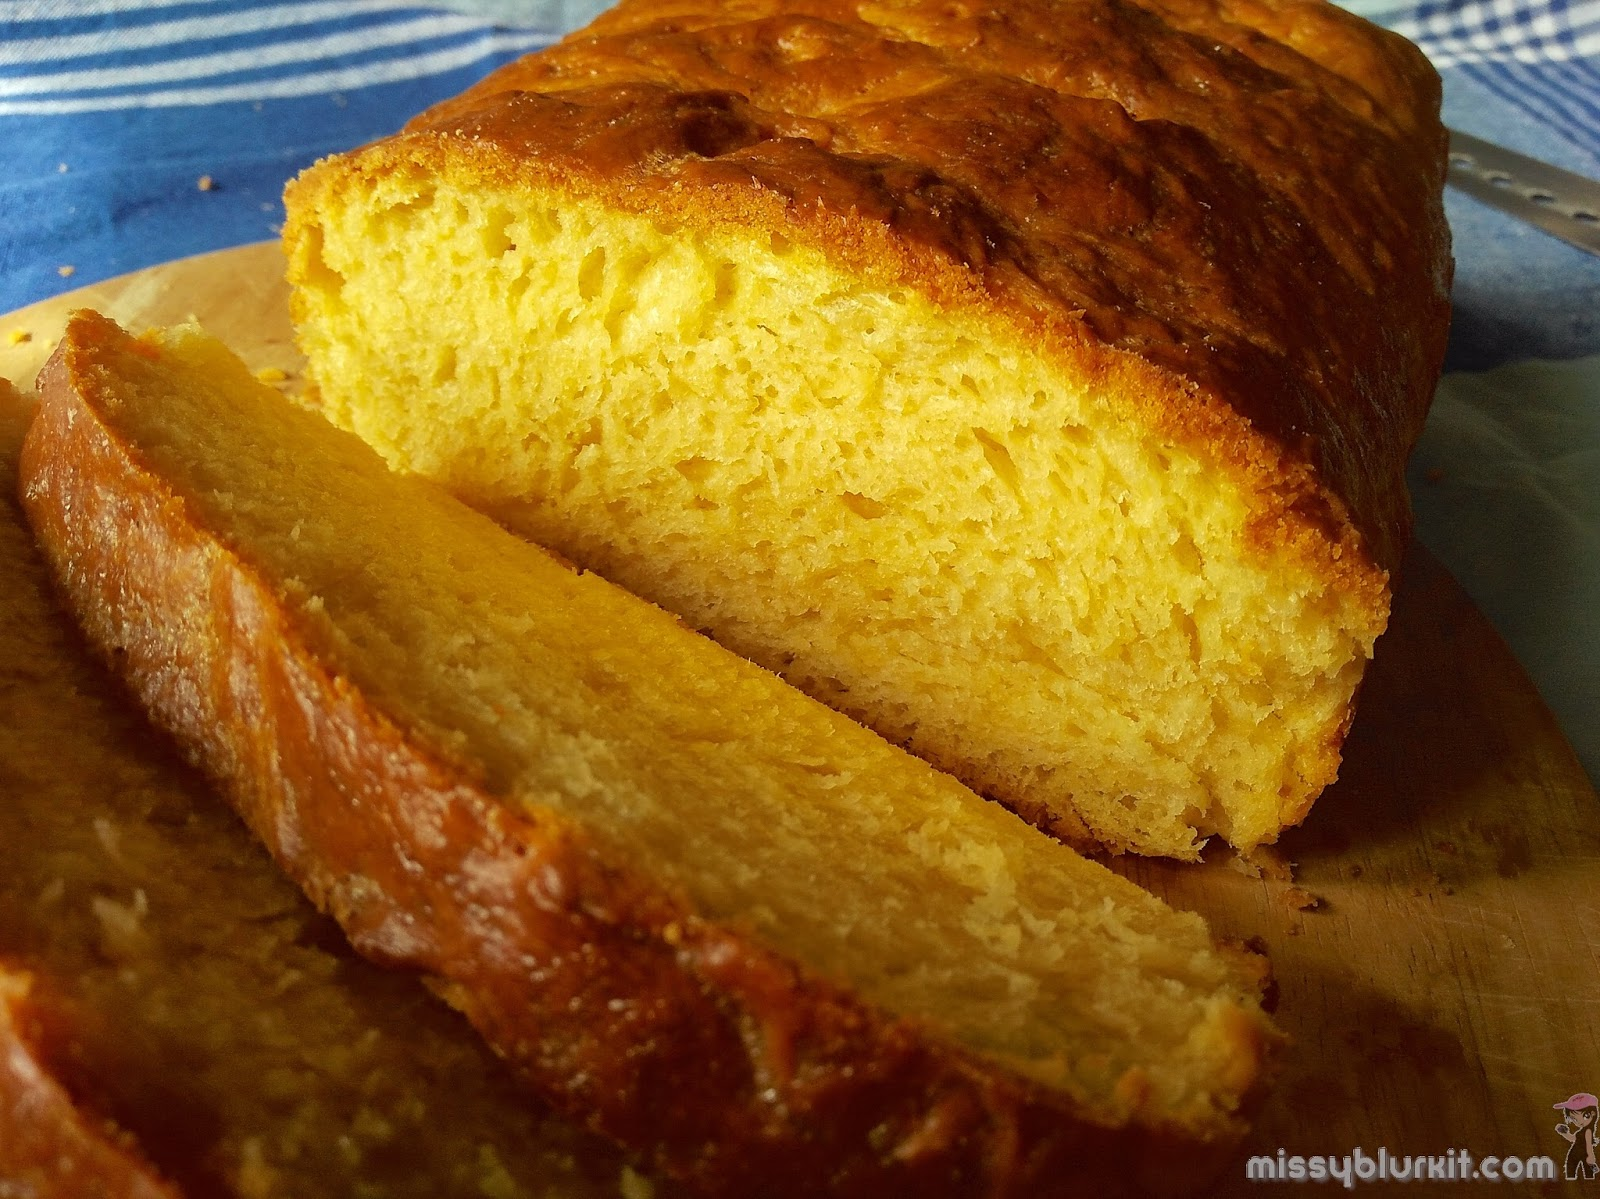 Freshly baked brioche for breakfast. Golden in colour from organic unbleached flour and brown sugar.